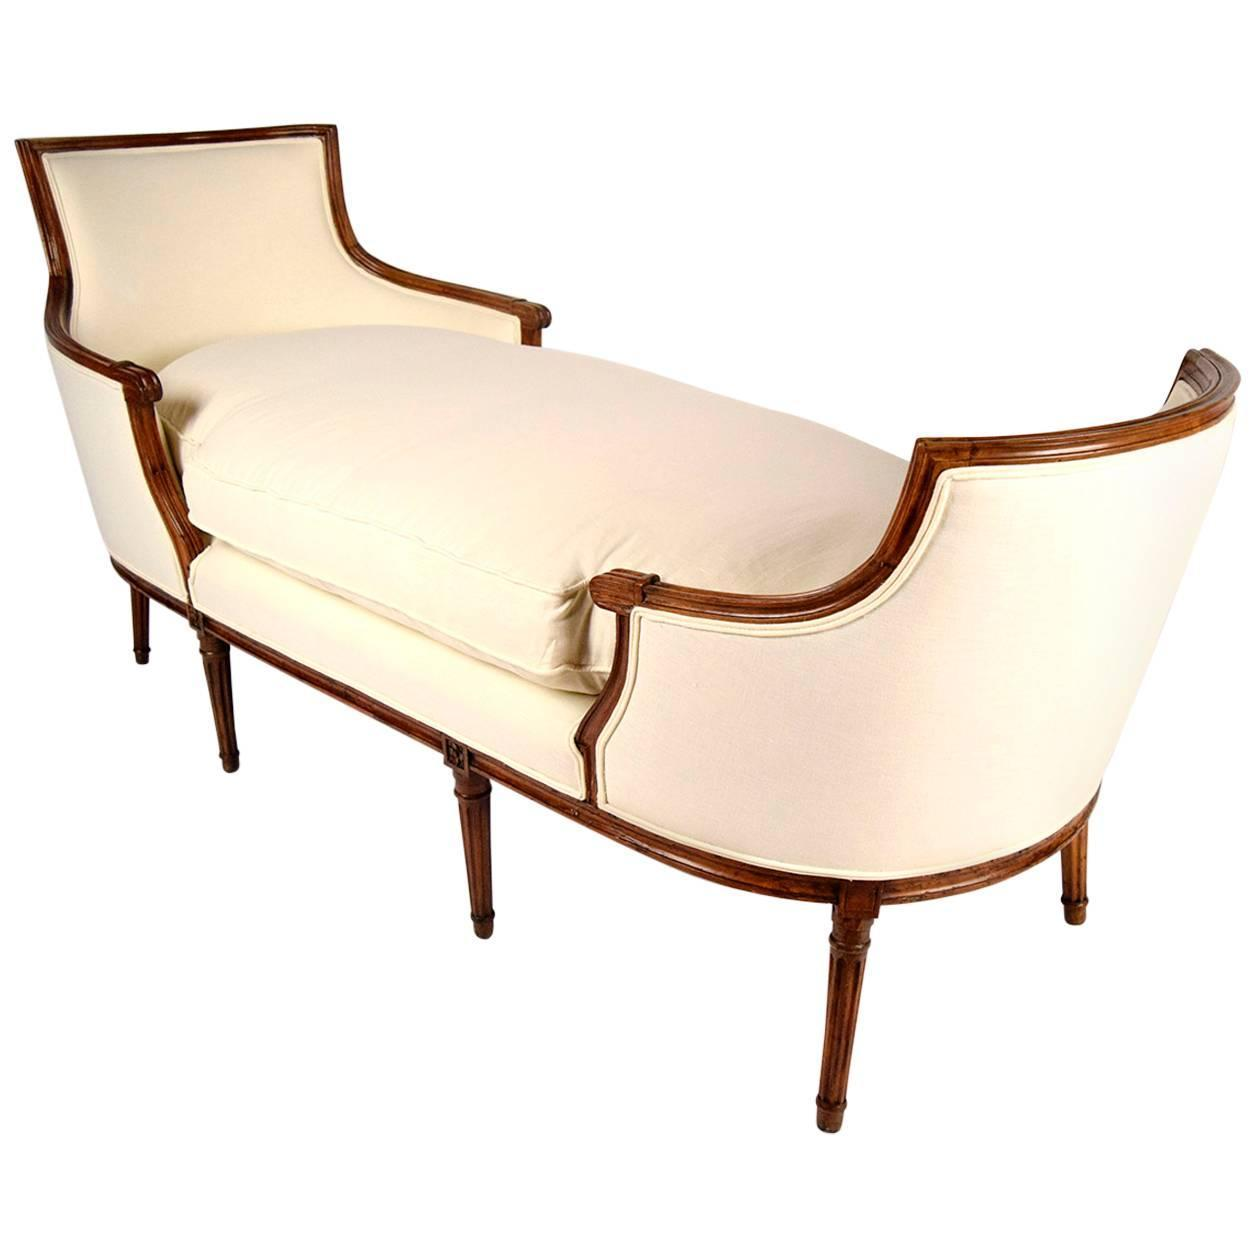 19 th century french louis xvi chaise longue for sale at for Chaise louis xvi